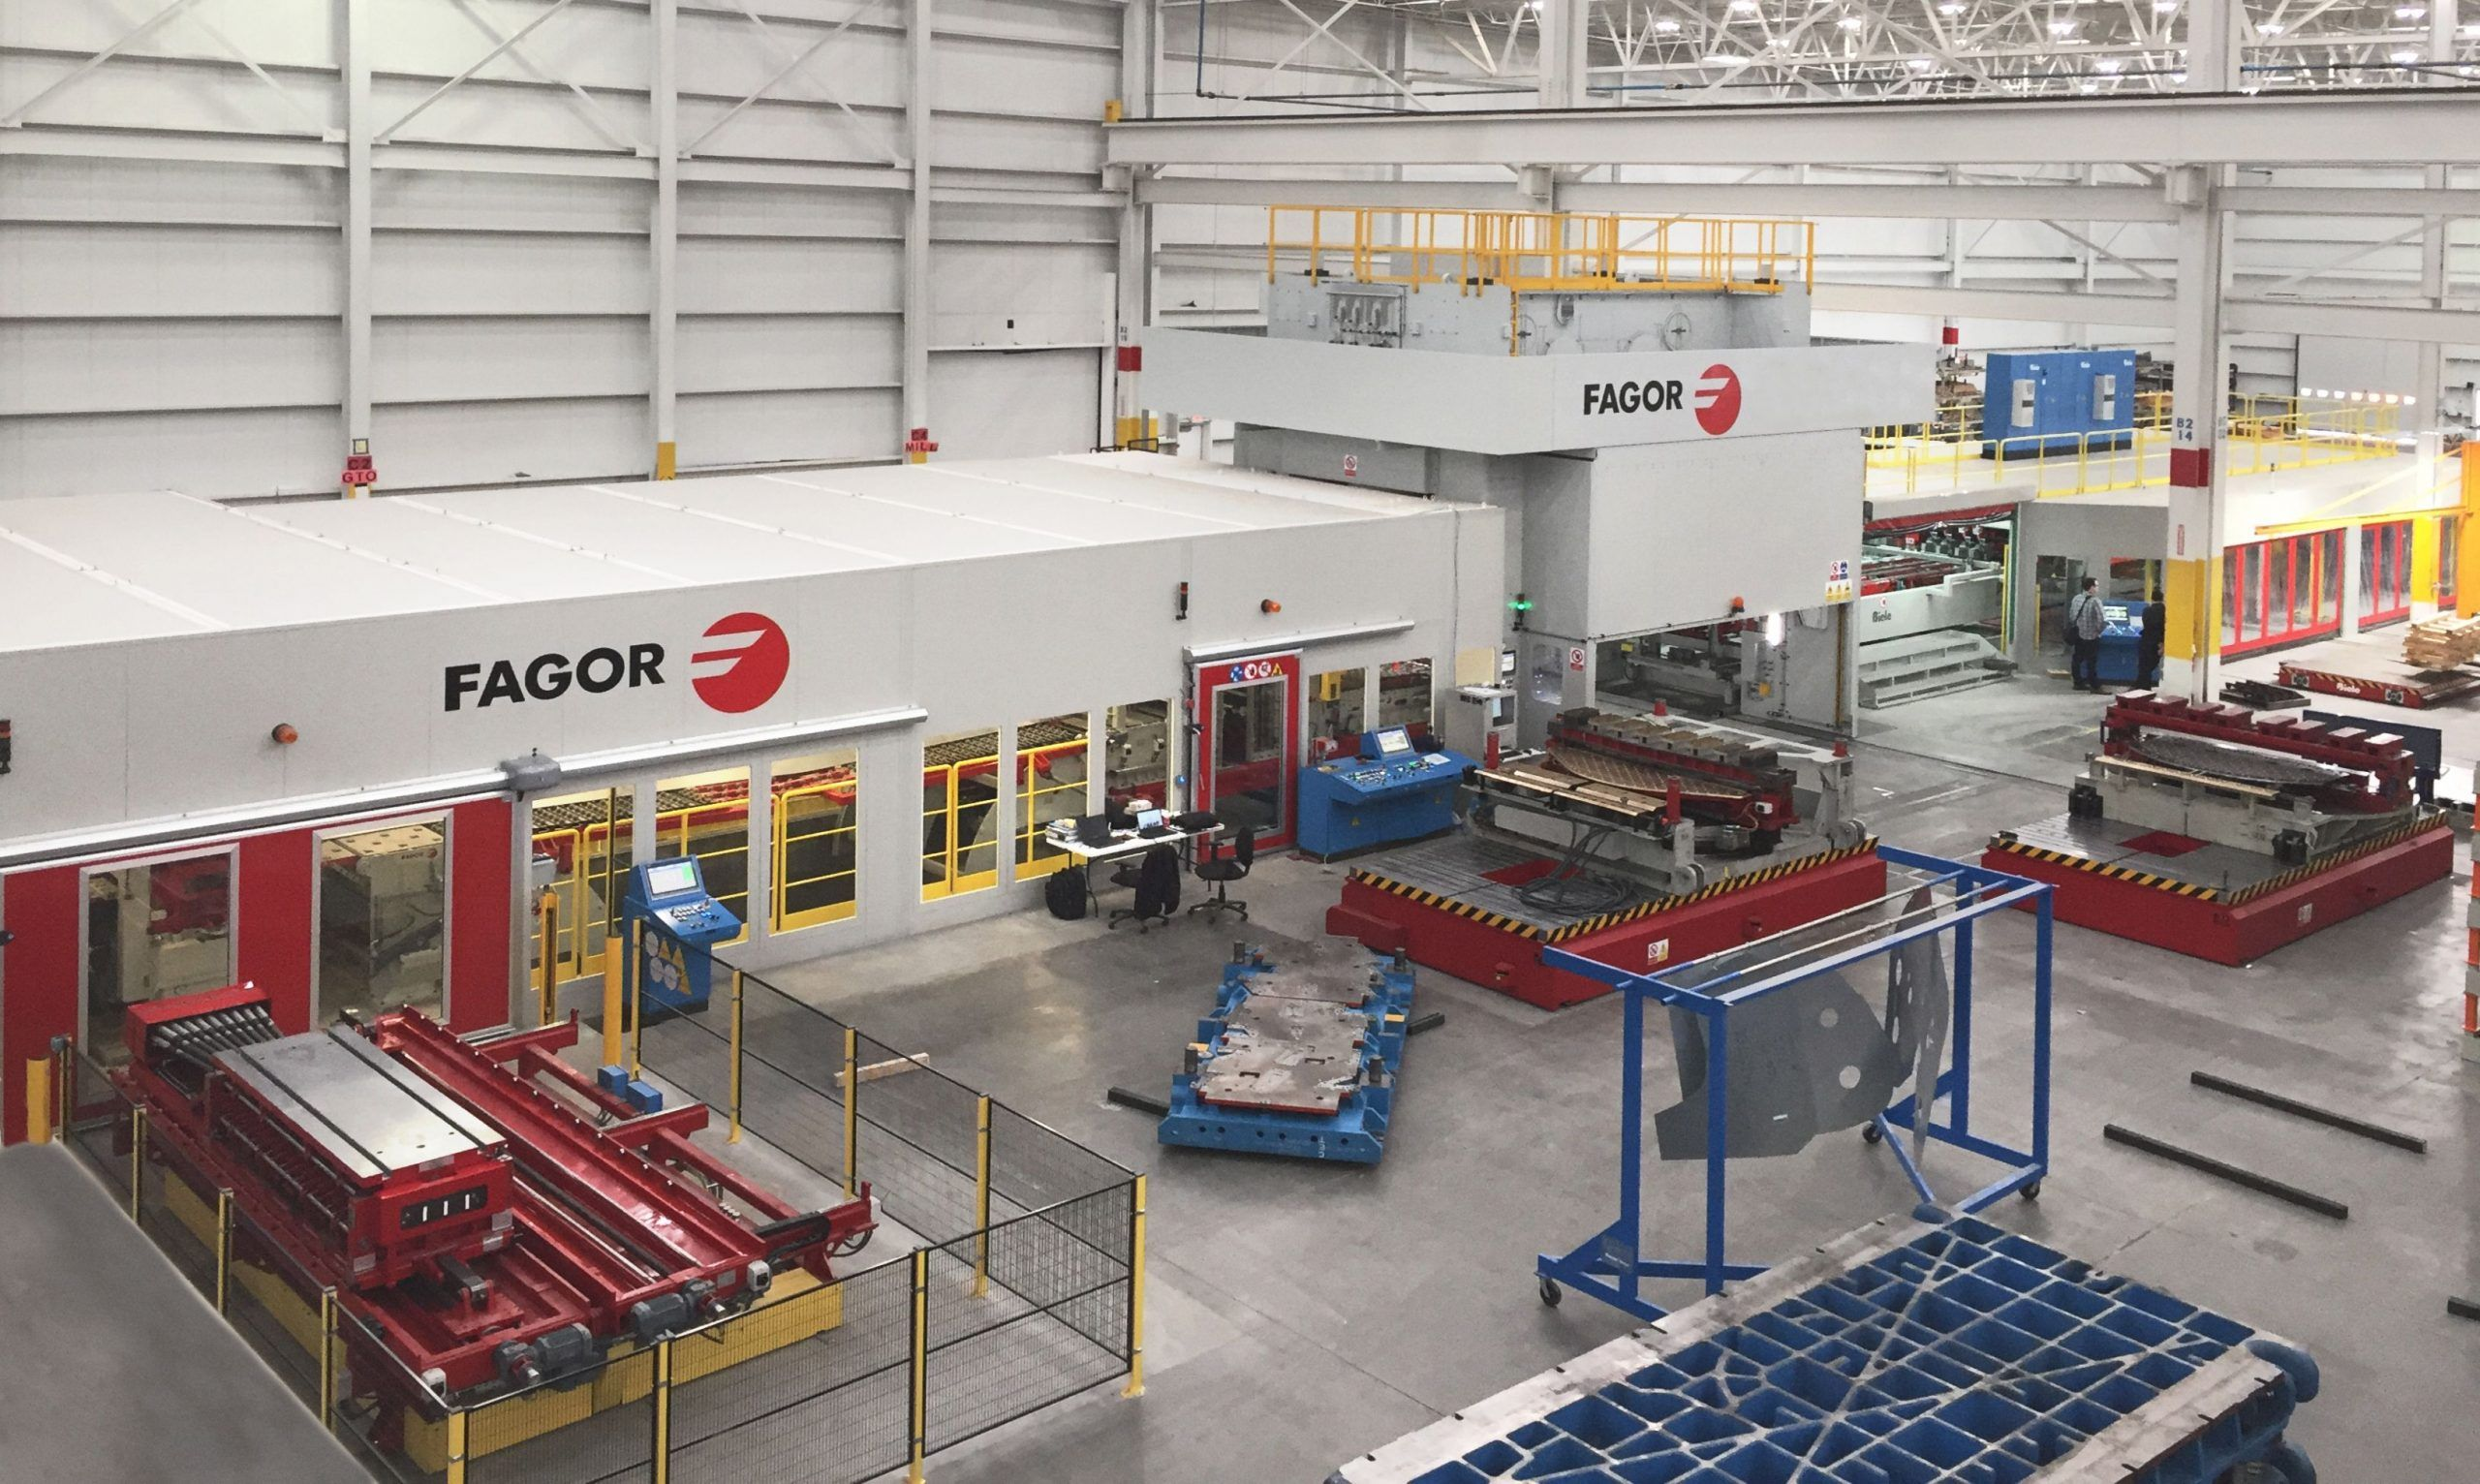 Fagor Arrasate event: Fagor Arrasate is supplying a new hybrid blanking line to the Gonvarri plant in Slovakia